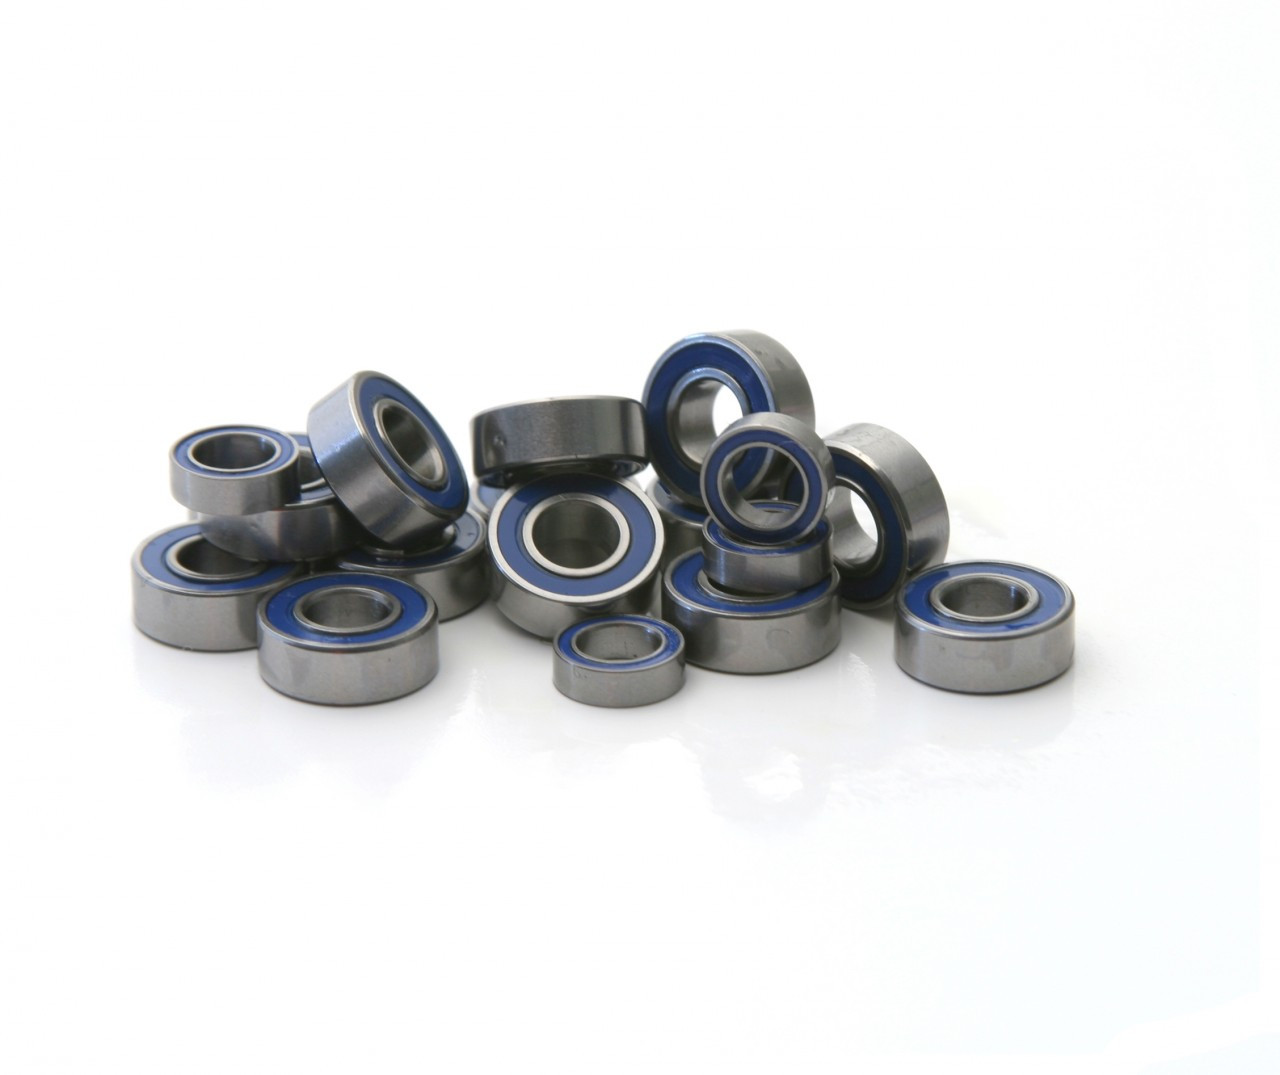 Traxxas Nitro Rustler Complete replacement bearing kit.